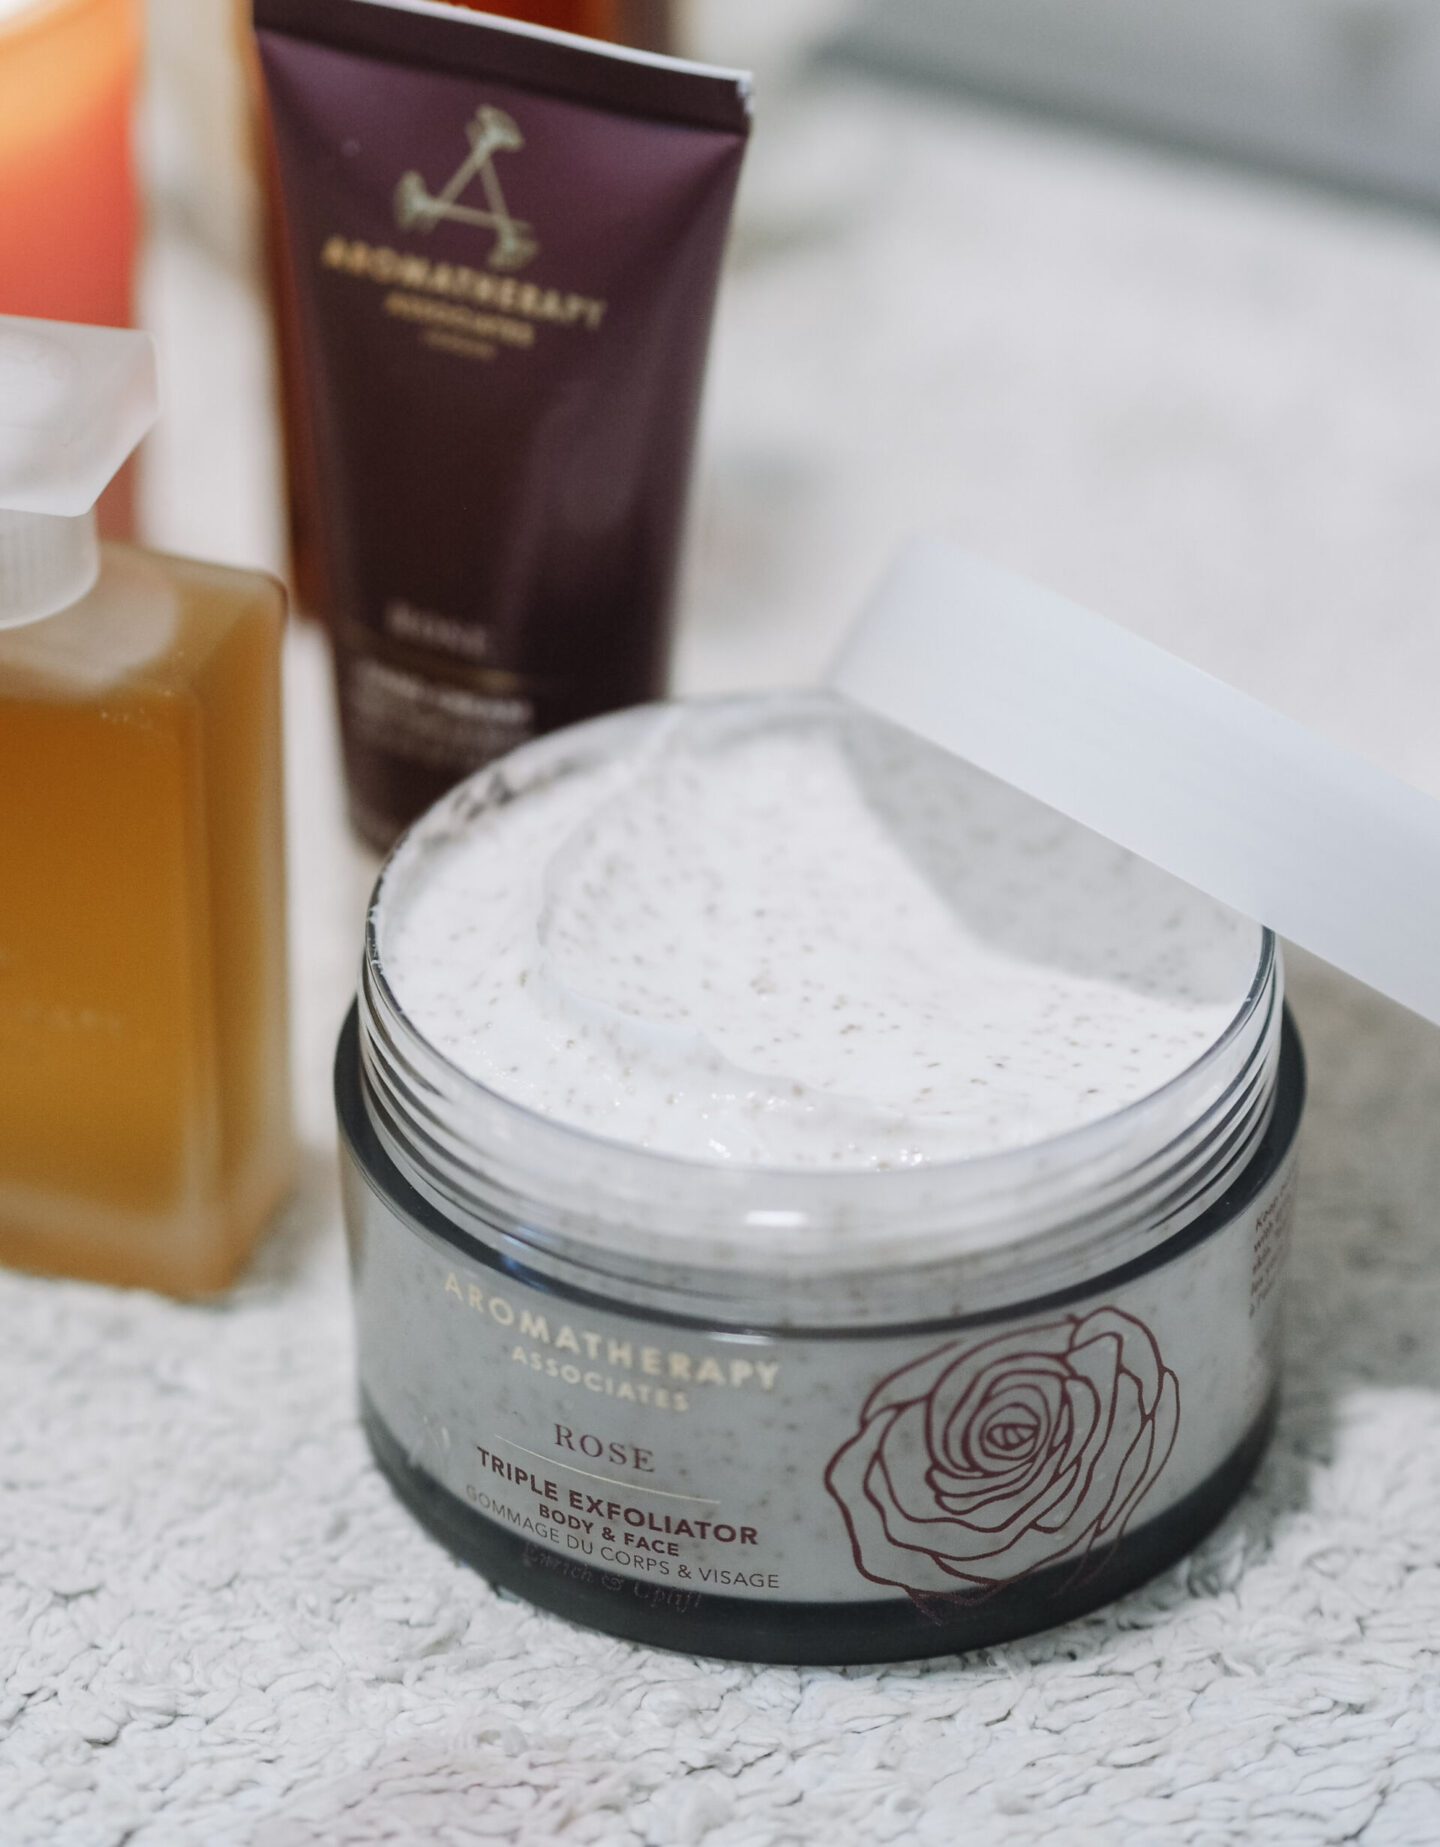 Aromatherapy Associates New 'Rose Reimagined' Collection Review Shower Oil Body Mask Scrub Exfoliator Hand Cream